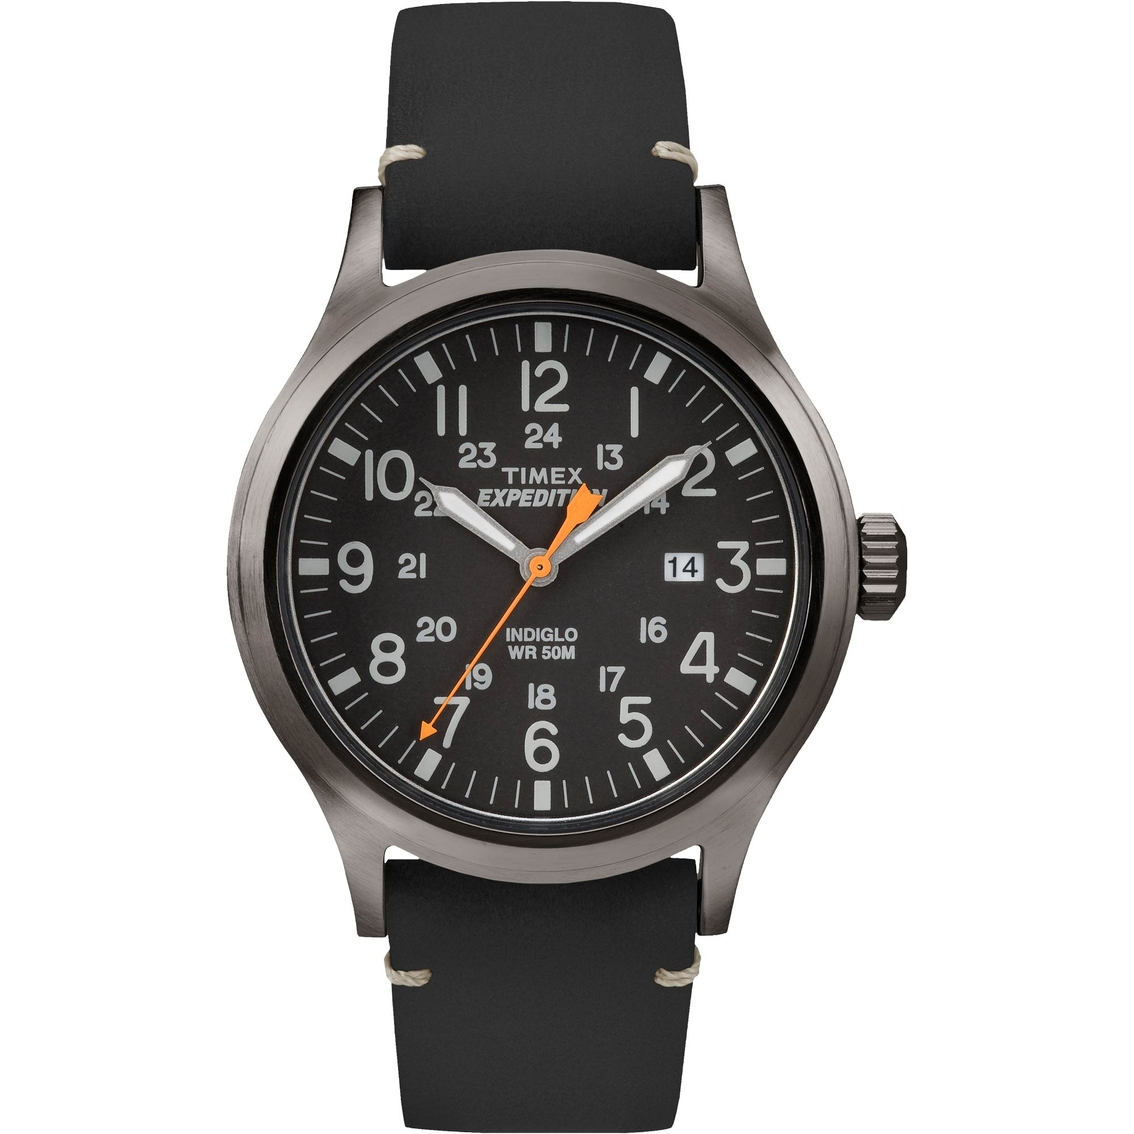 9f24f6059 Timex Men's Expedition Scout Analog Watch Tw4b01900 | Non-metal Band ...